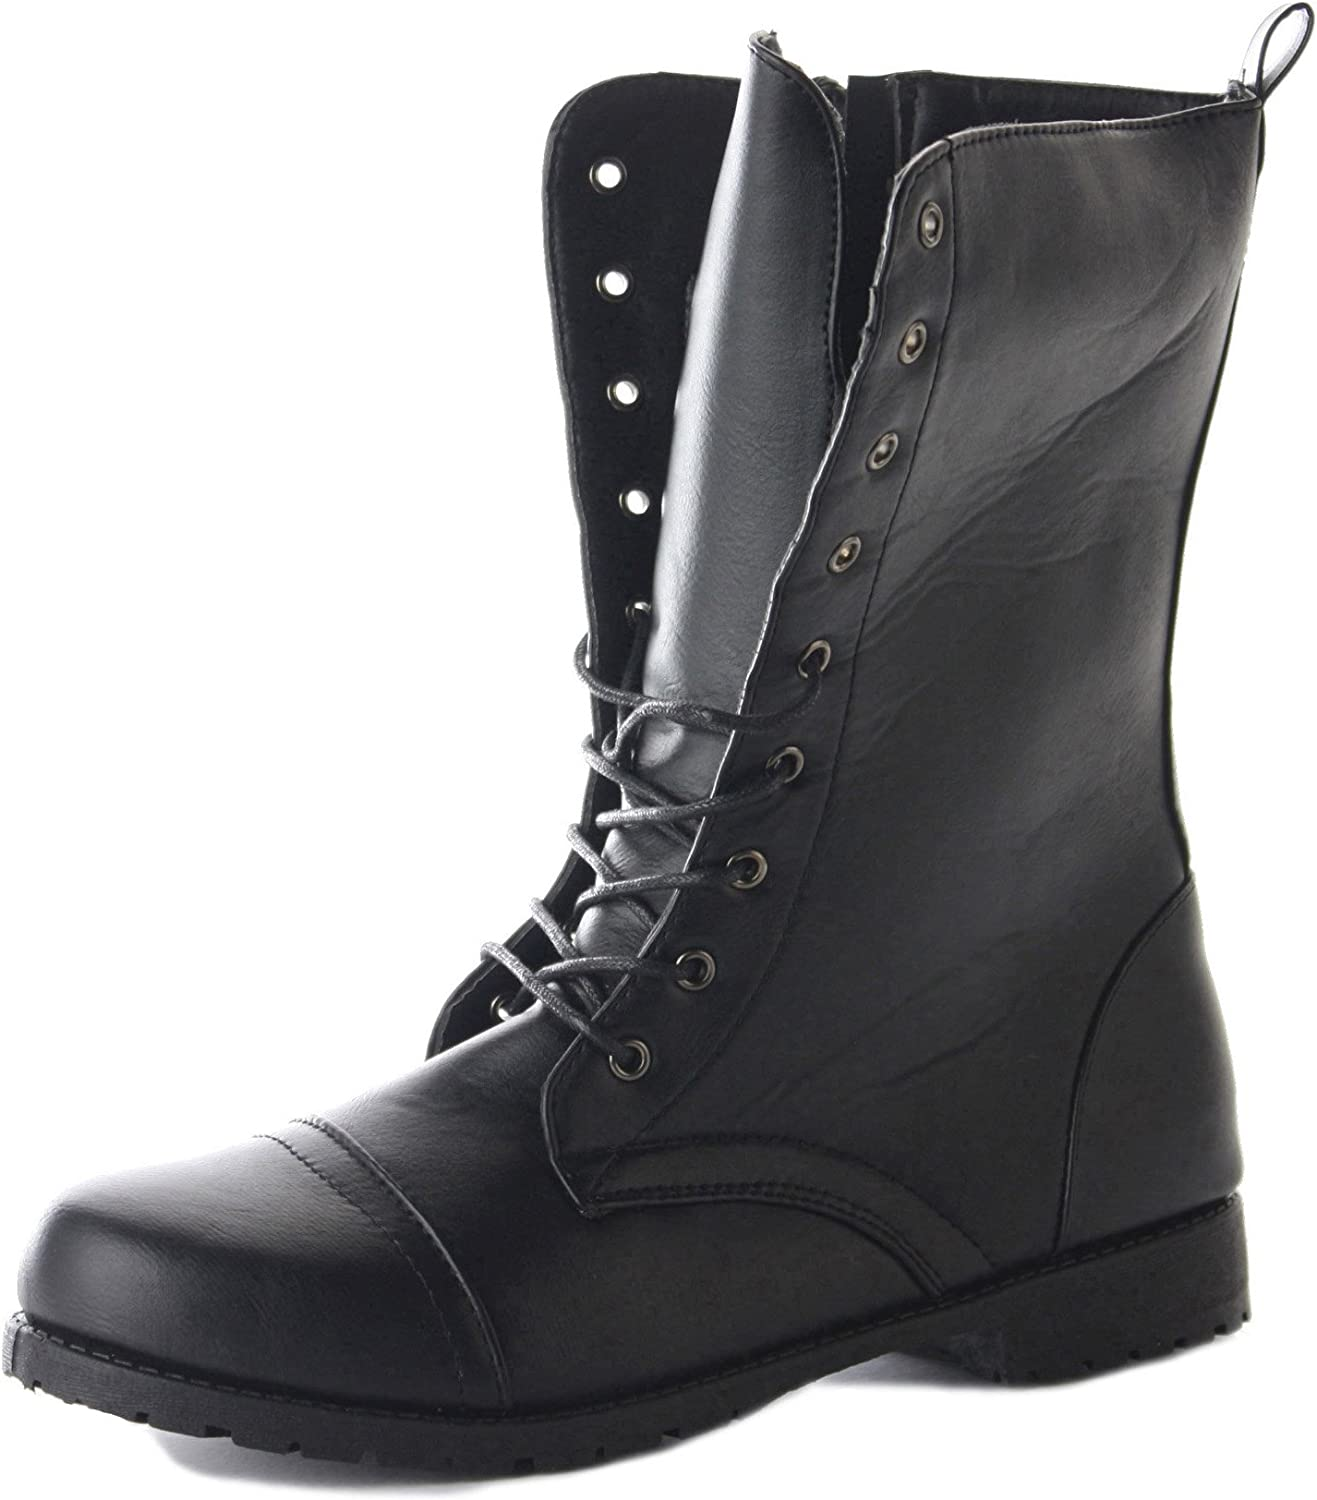 Womens Lace Up Ankle Combat Army Style